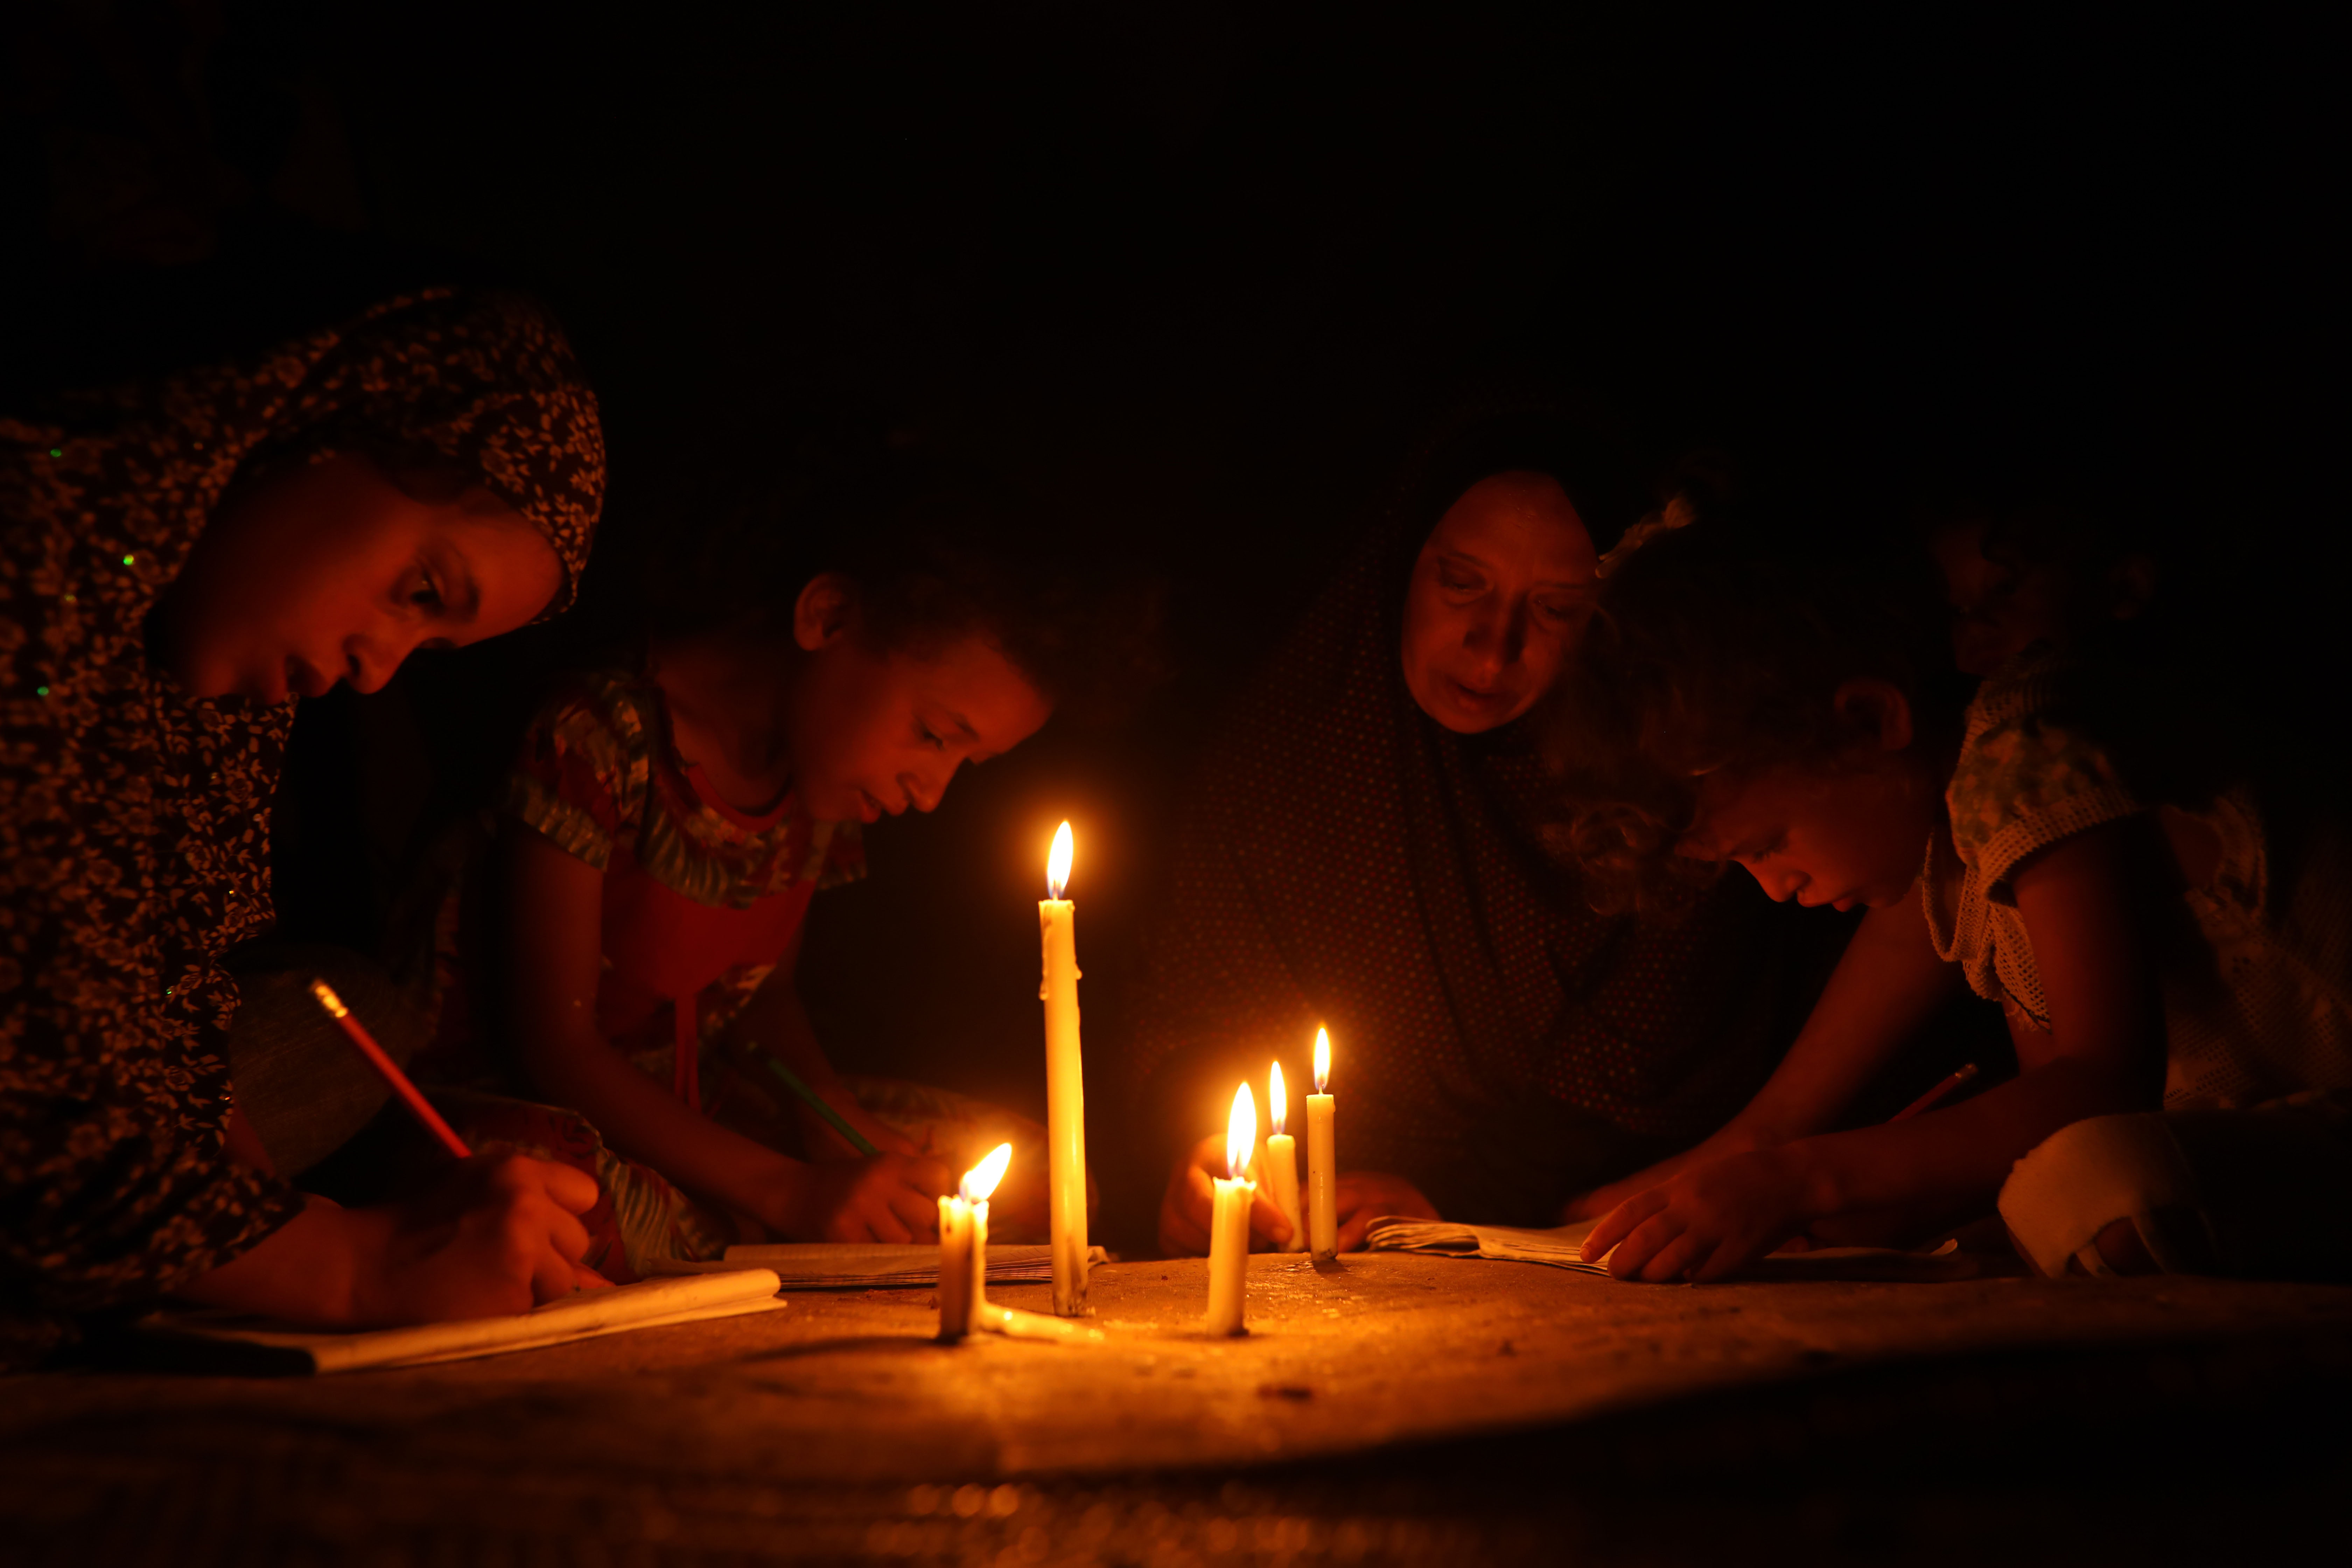 Palestinian children use a gas lamp and candles to do their homework at their home in Khan Yunis in the southern Gaza Strip on August 19, 2020. (Photo: Activestills / Mohammed Zaanoun)